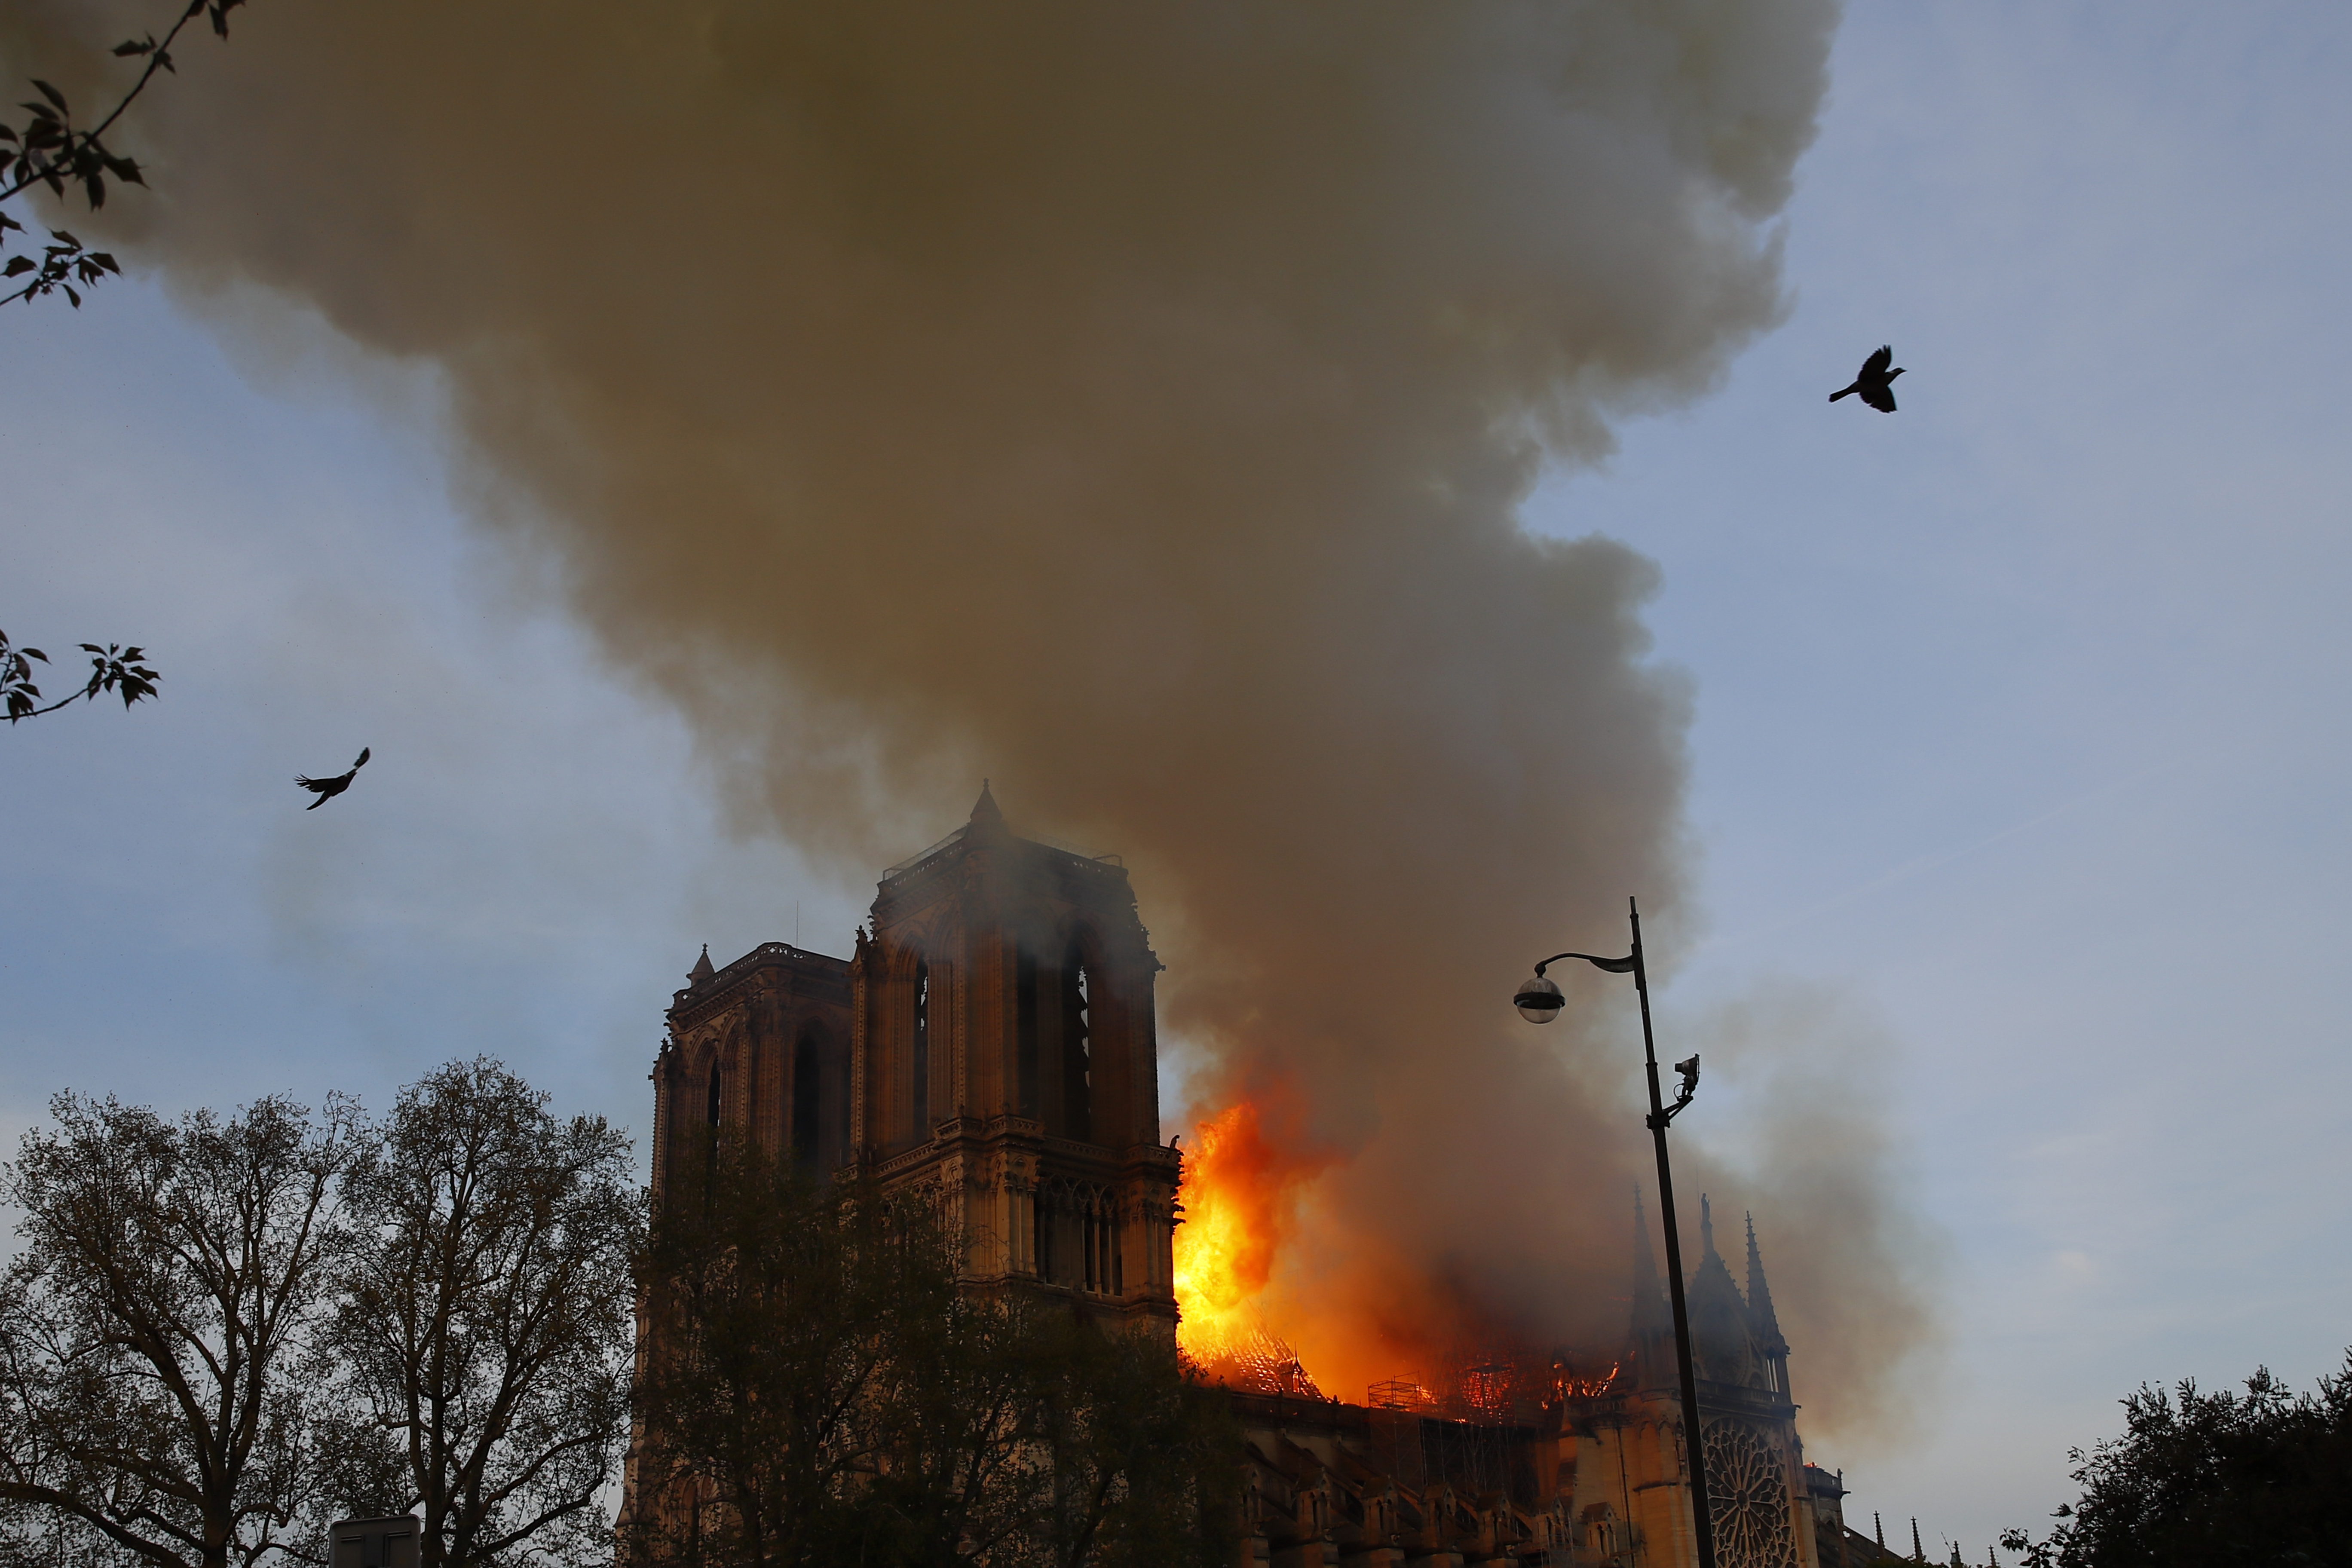 Notre Dame cathedral is burning in Paris, Monday, April 15, 2019. A catastrophic fire engulfed the upper reaches of Paris' soaring Notre Dame Cathedral as it was undergoing renovations Monday, threatening one of the greatest architectural treasures of the Western world as tourists and Parisians looked on aghast from the streets below. (AP Photo/Francois Mori)